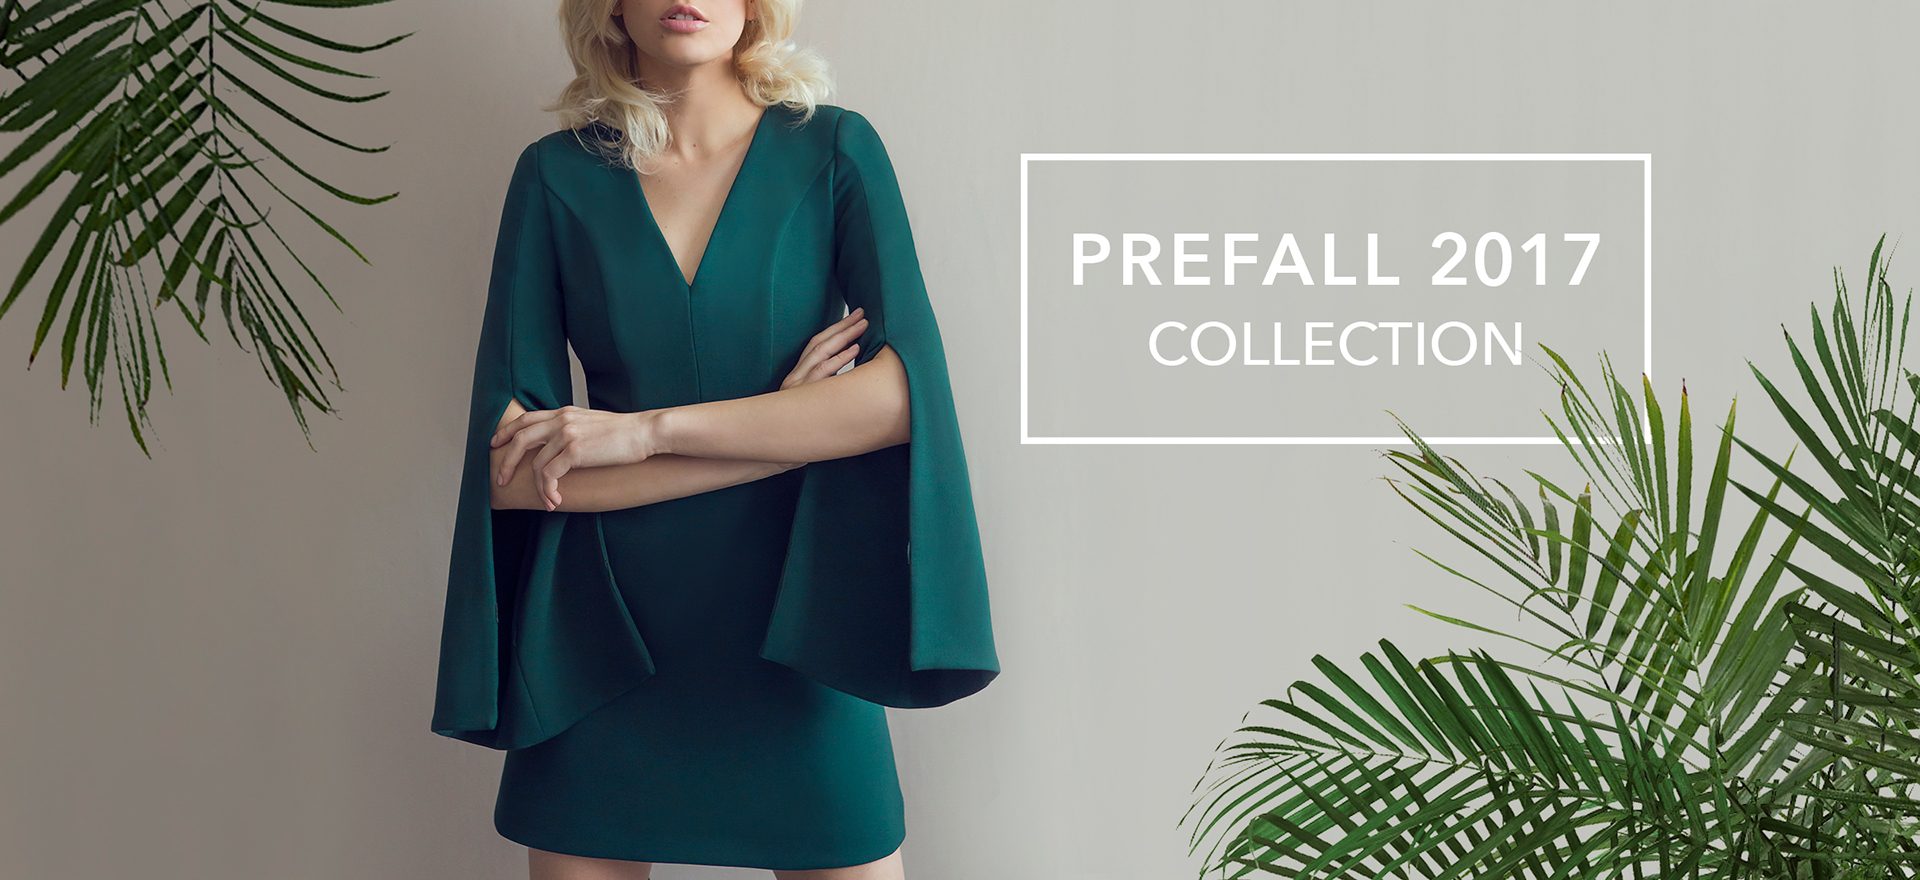 PREFALL 2017 COLLECTION